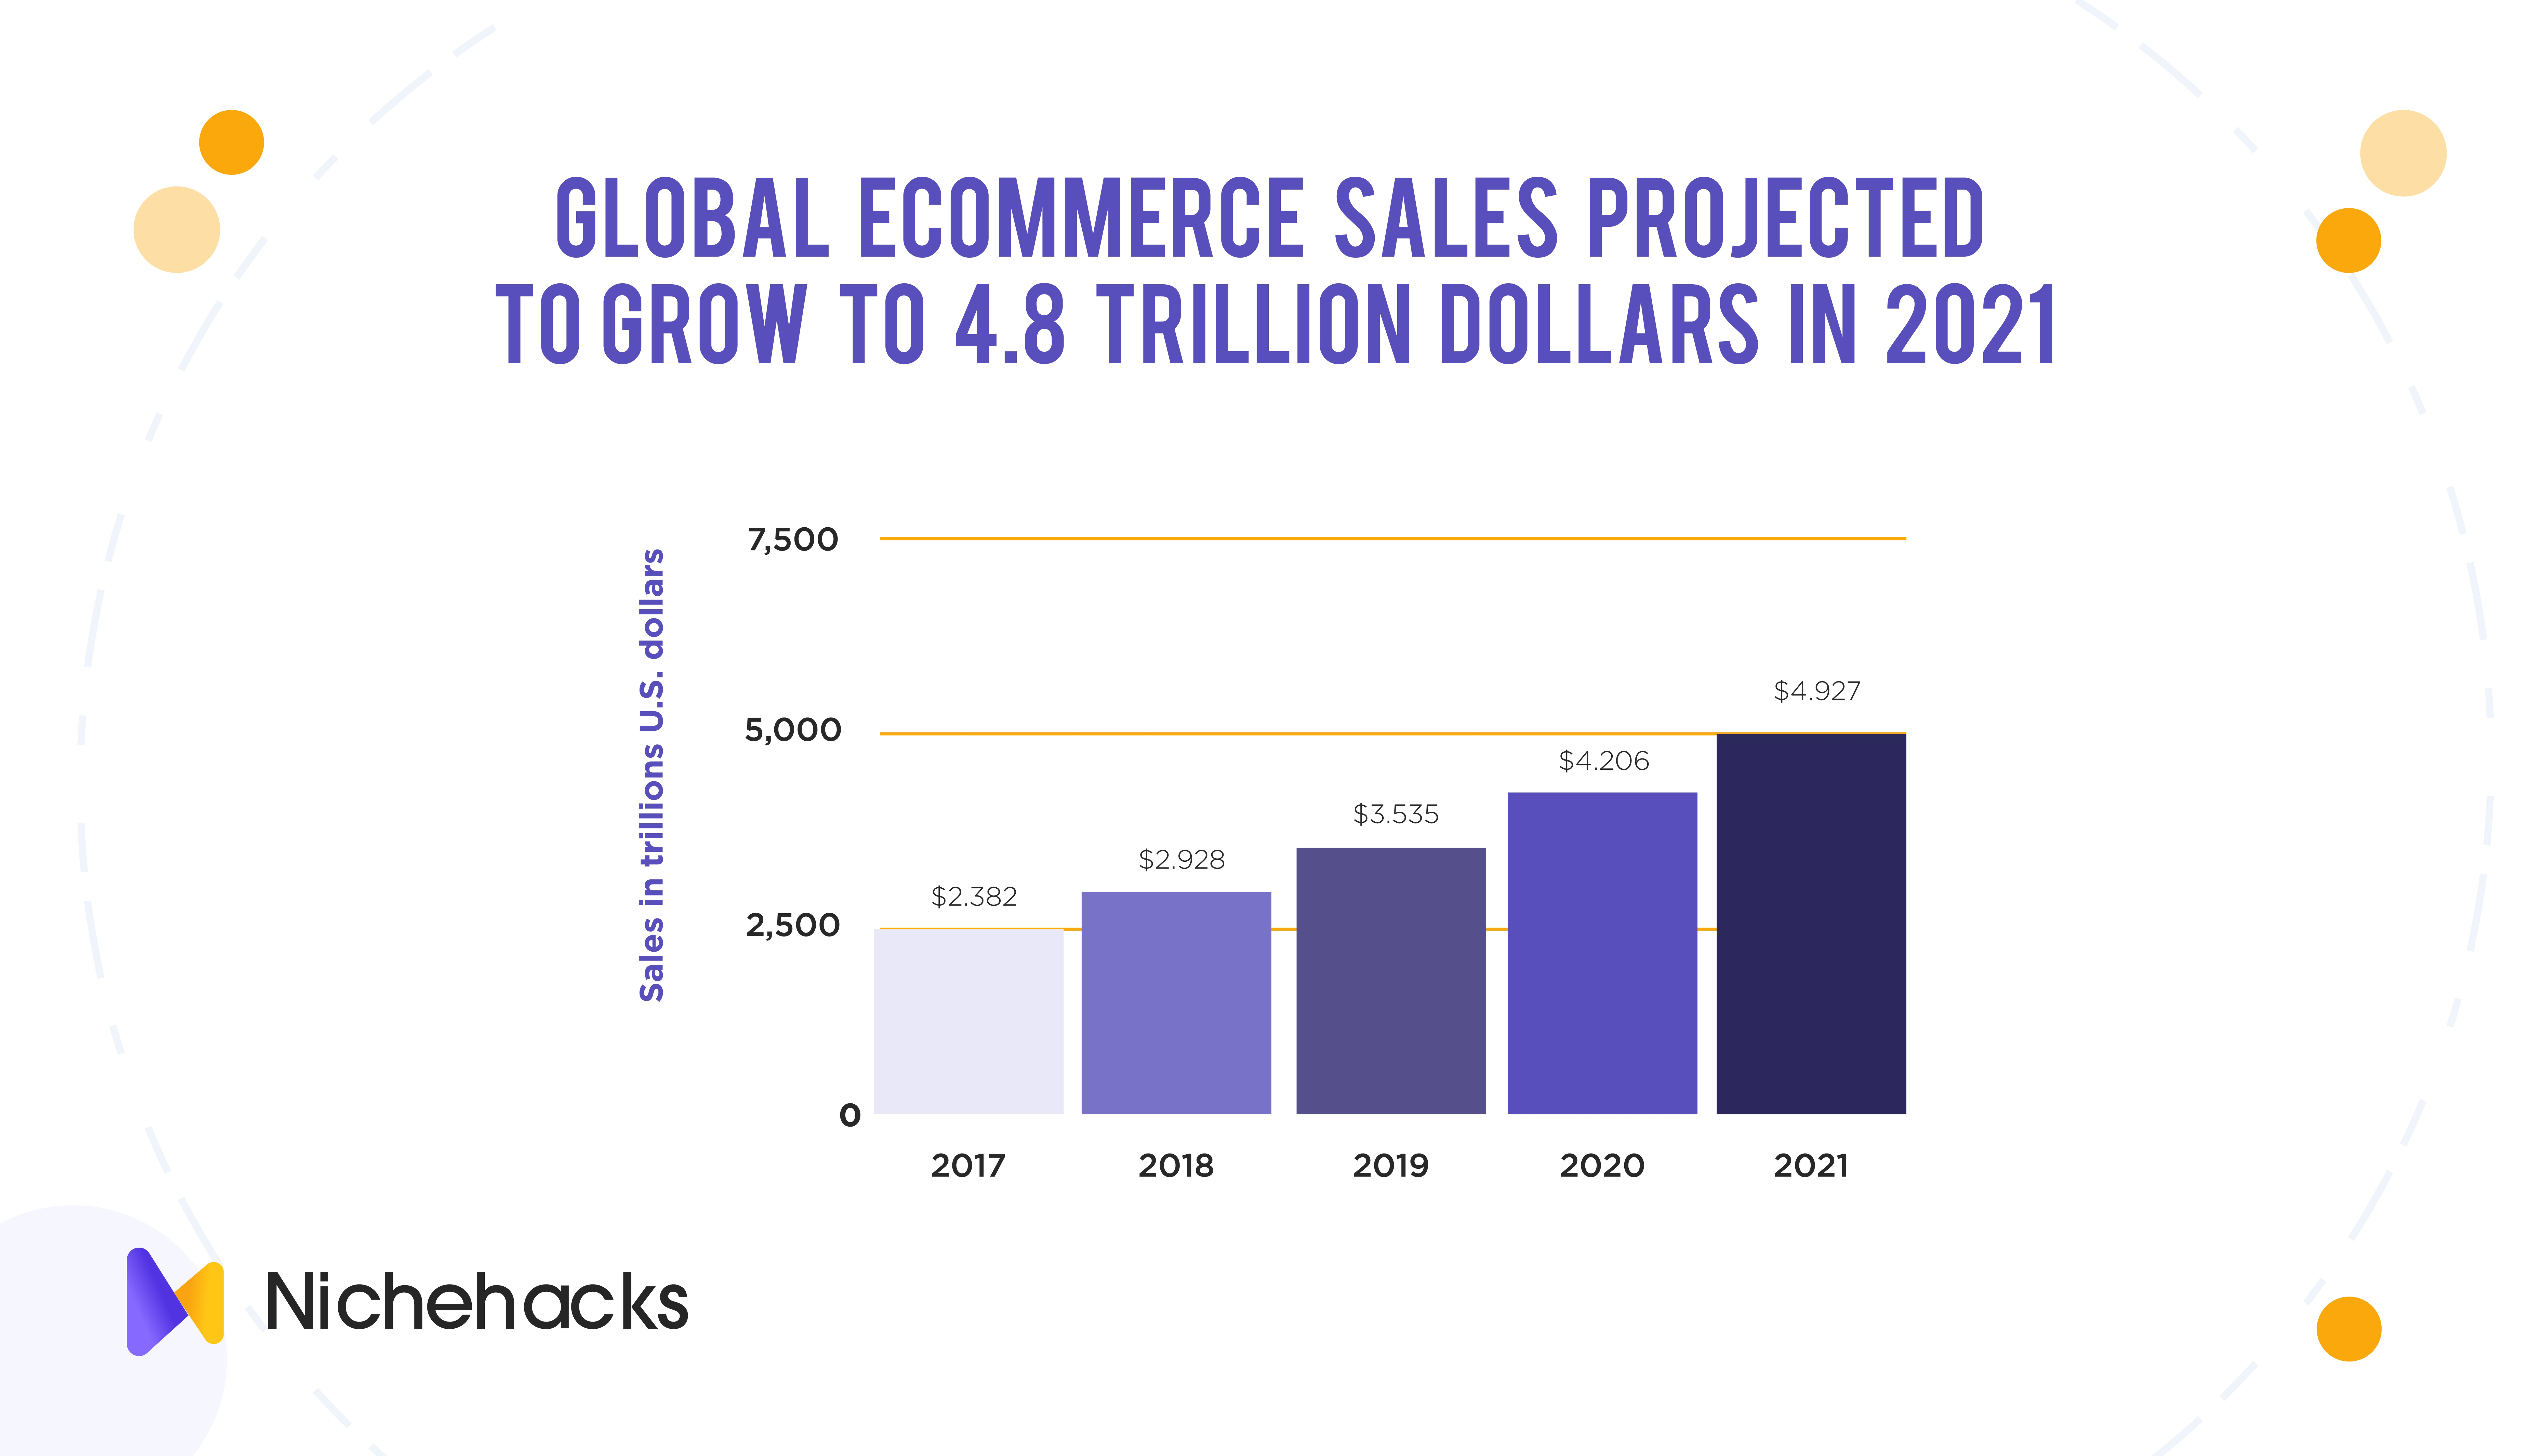 Global eCommerce sales projections